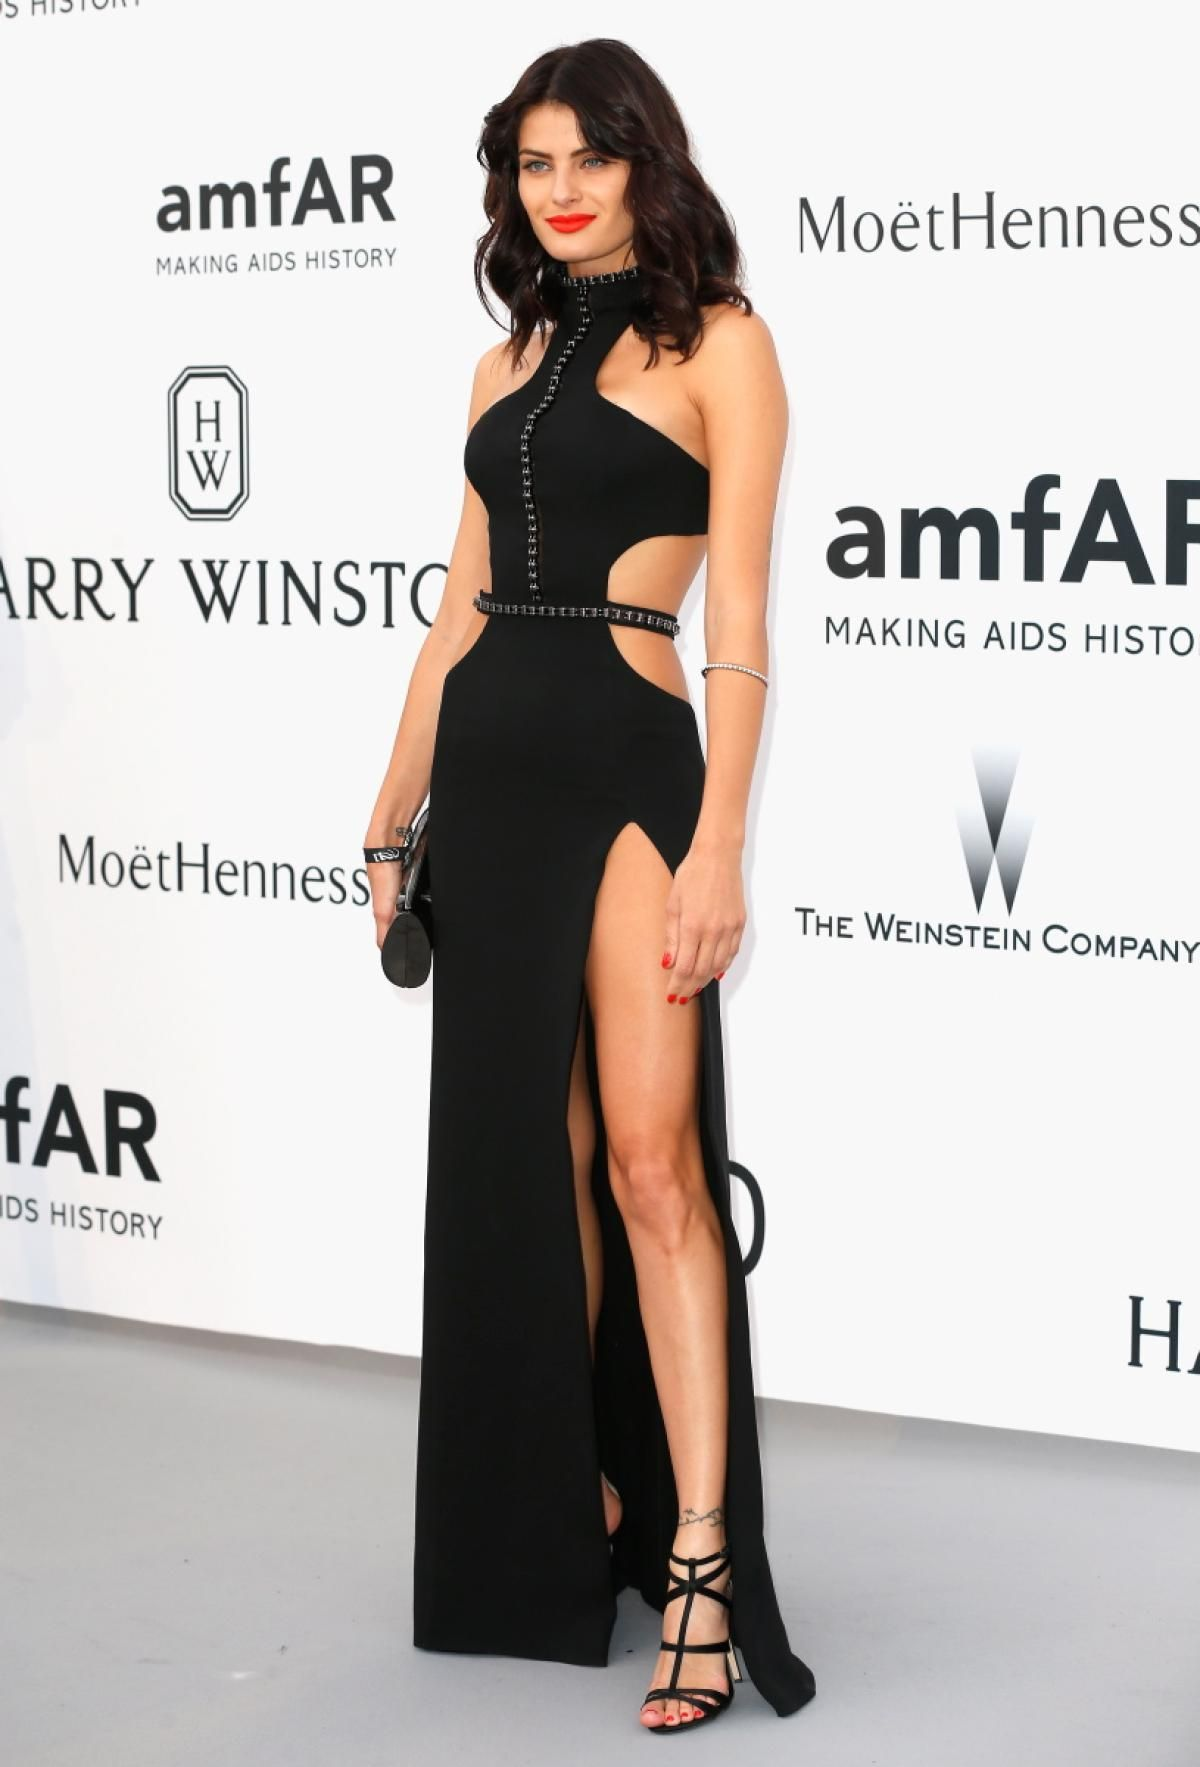 isabeli-fontana-at-amfar-s-2015-cinema-against-aids-gala-in-cap-d-antibes_1.jpg